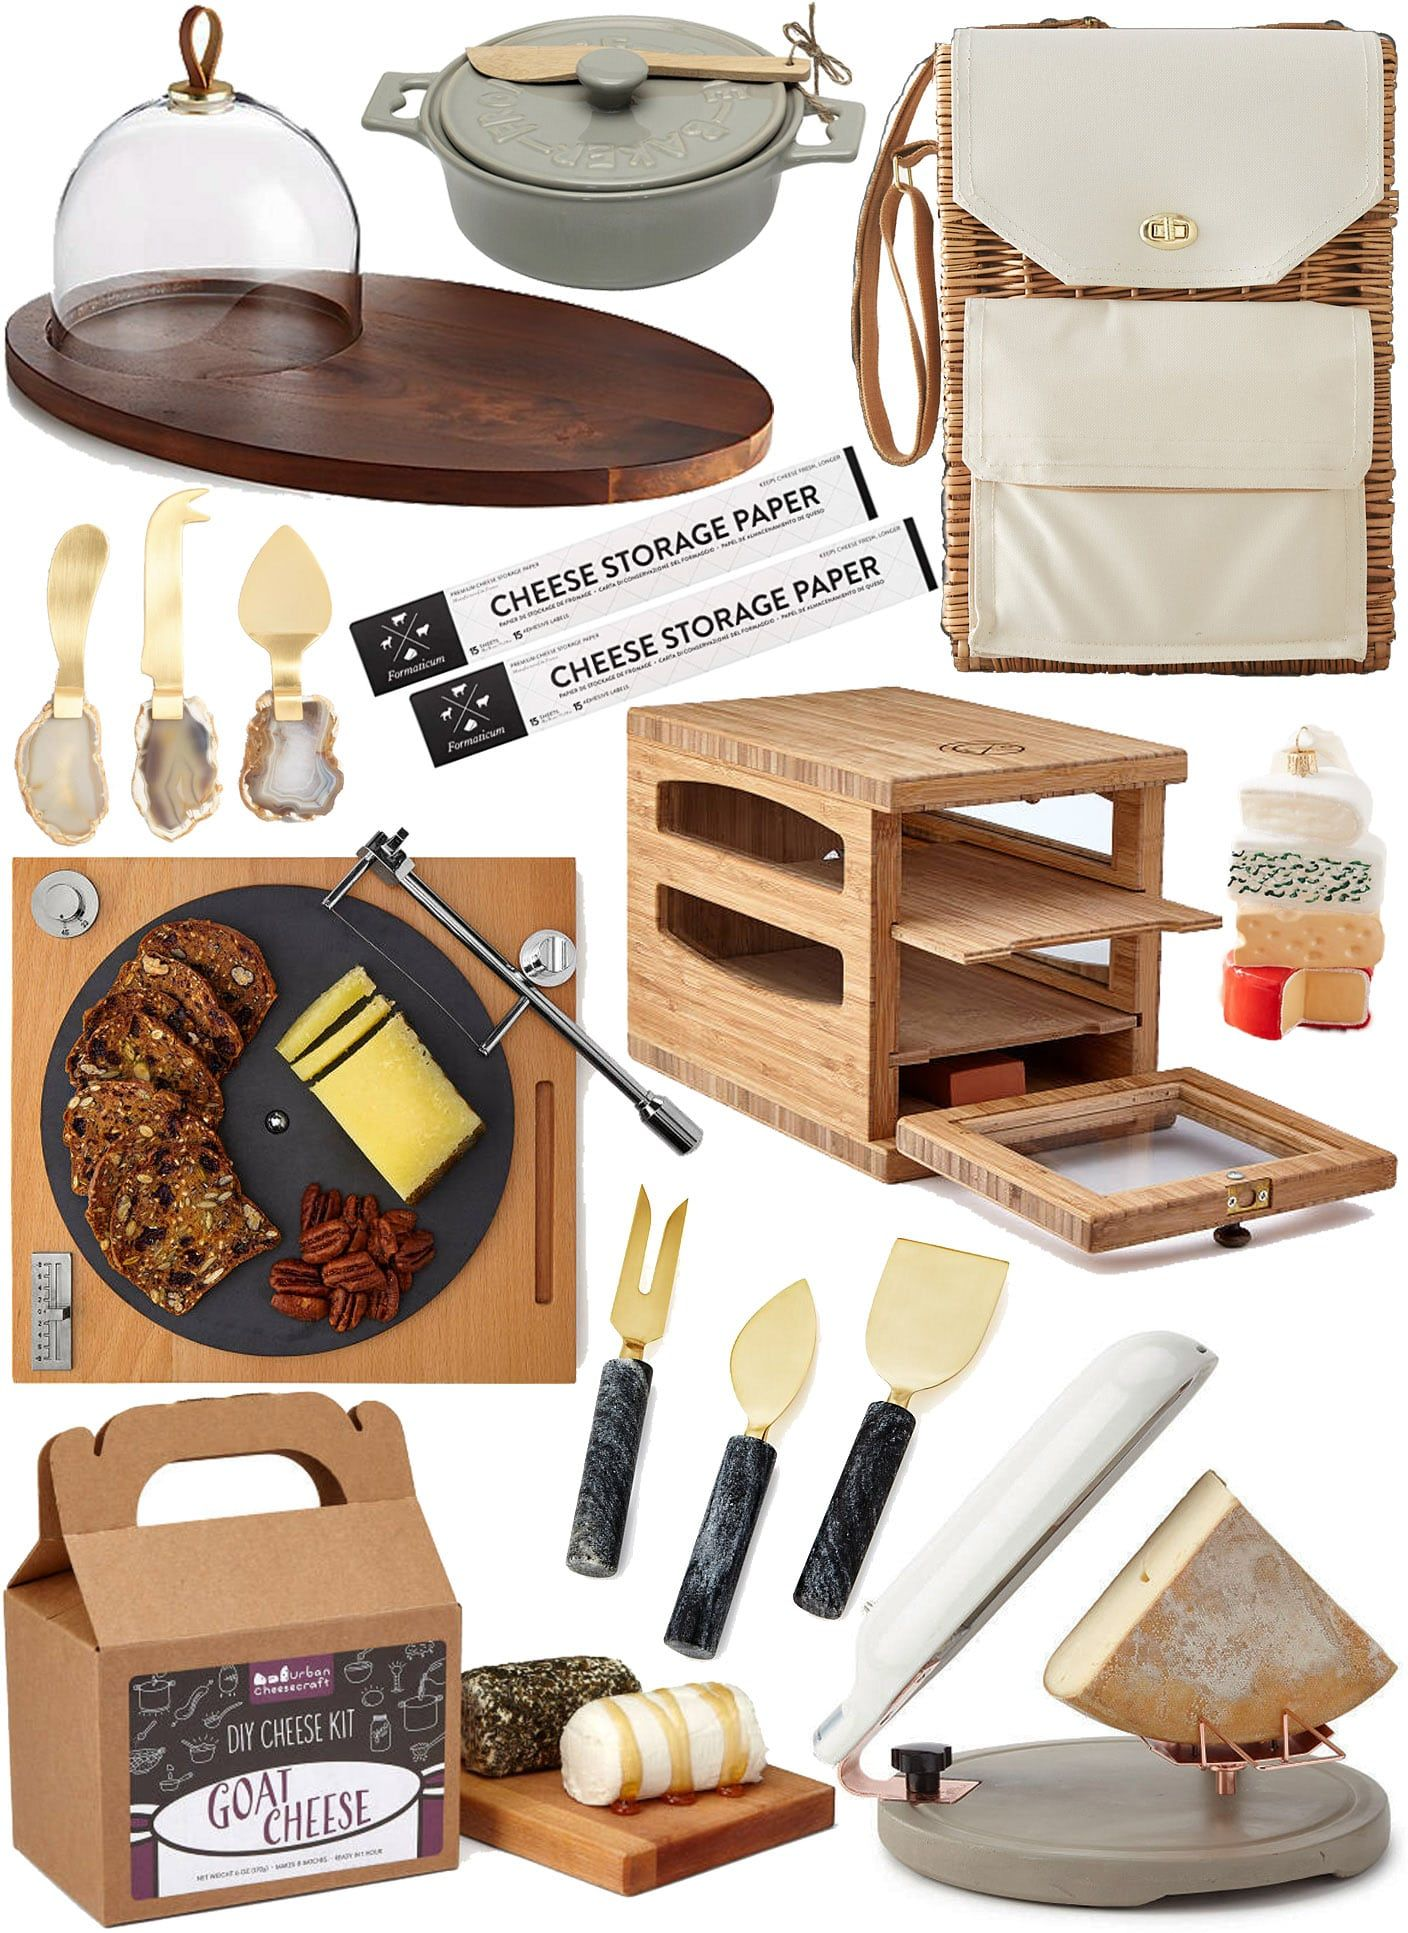 10 gifts for the wannabe cheesemonger with images